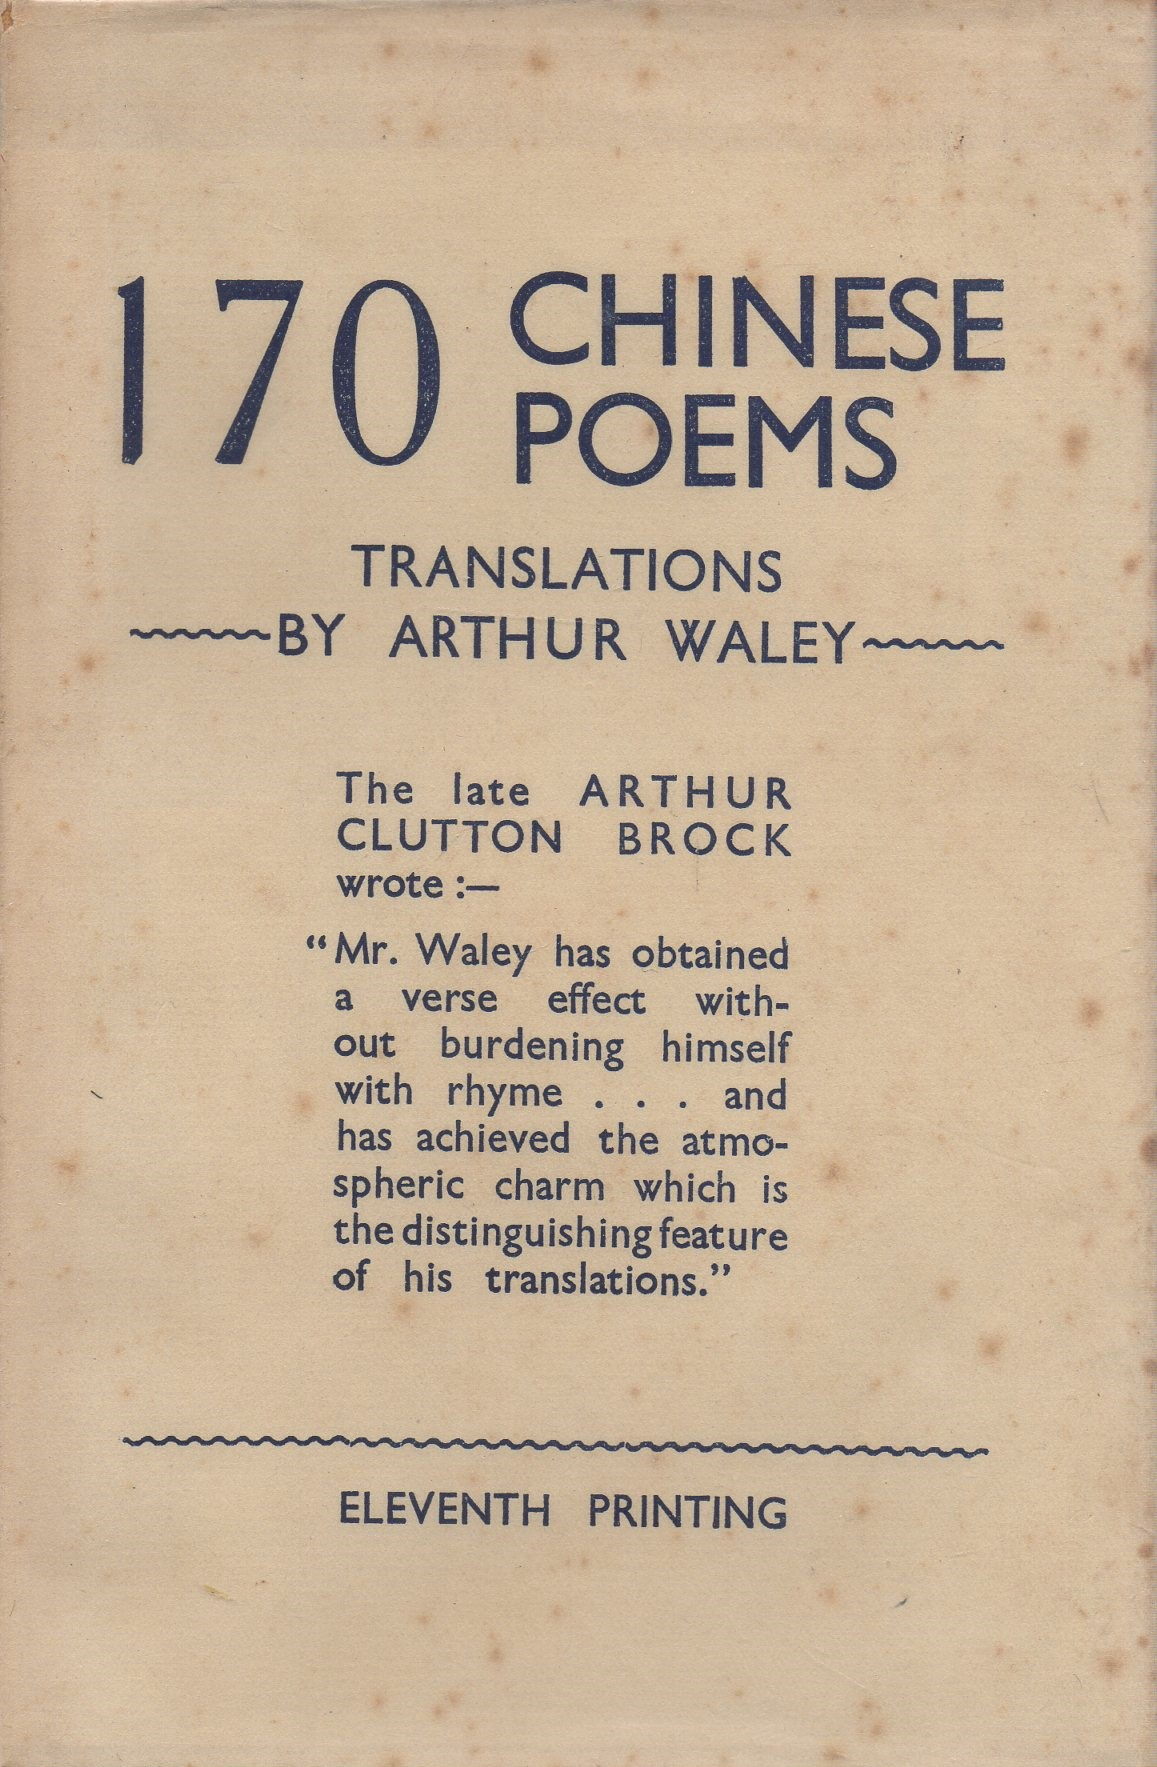 WALEY, ARTHUR (TRANS.) - One Hundred & Seventy Chinese Poems